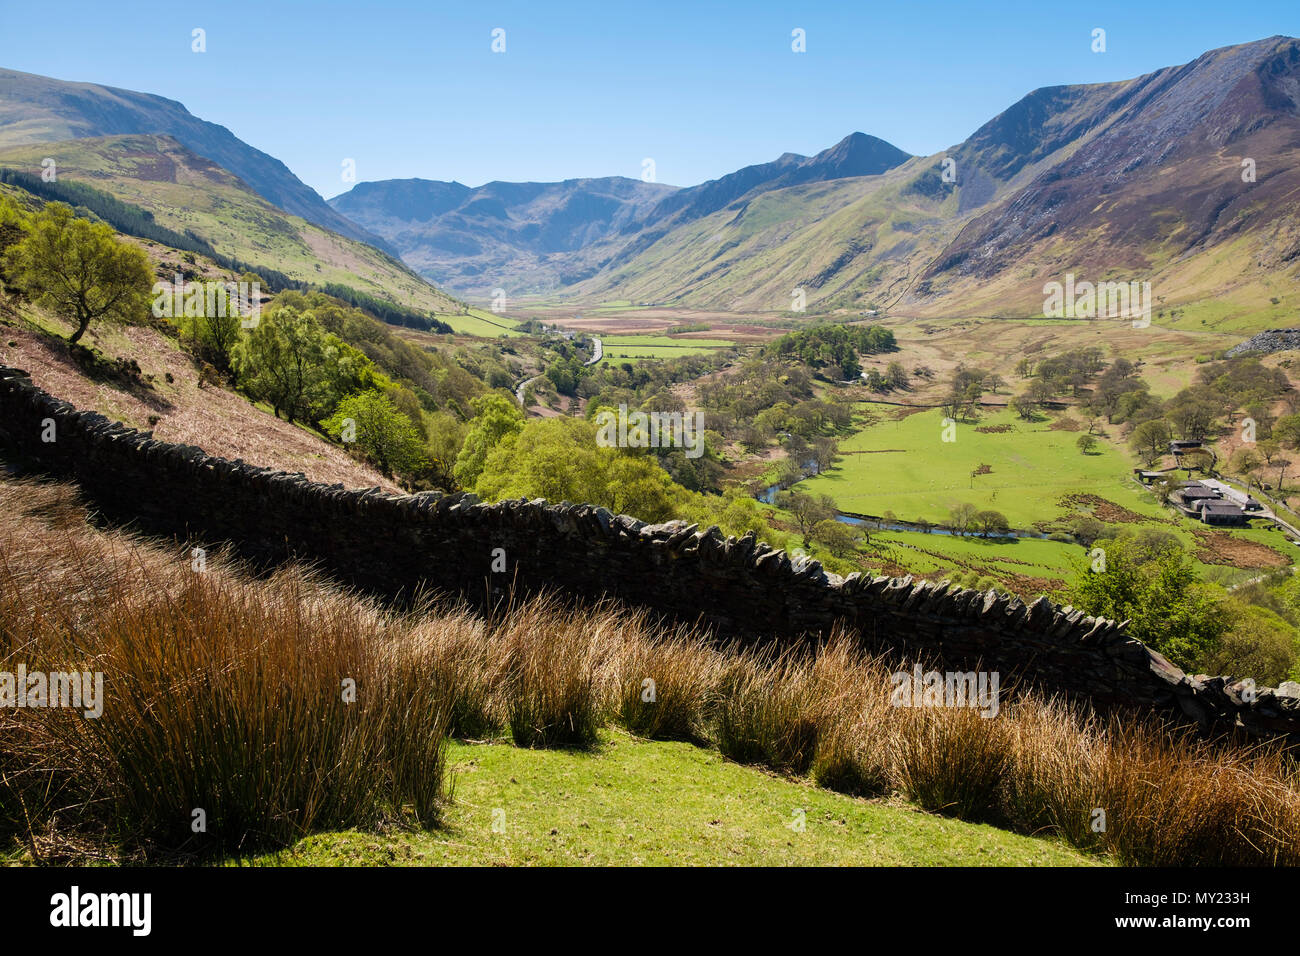 View up Nant Ffrancon valley towards Glyderau mountains of Snowdonia National Park (Eryri) in summer. Bethesda, Gwynedd, North Wales, UK, Britain - Stock Image